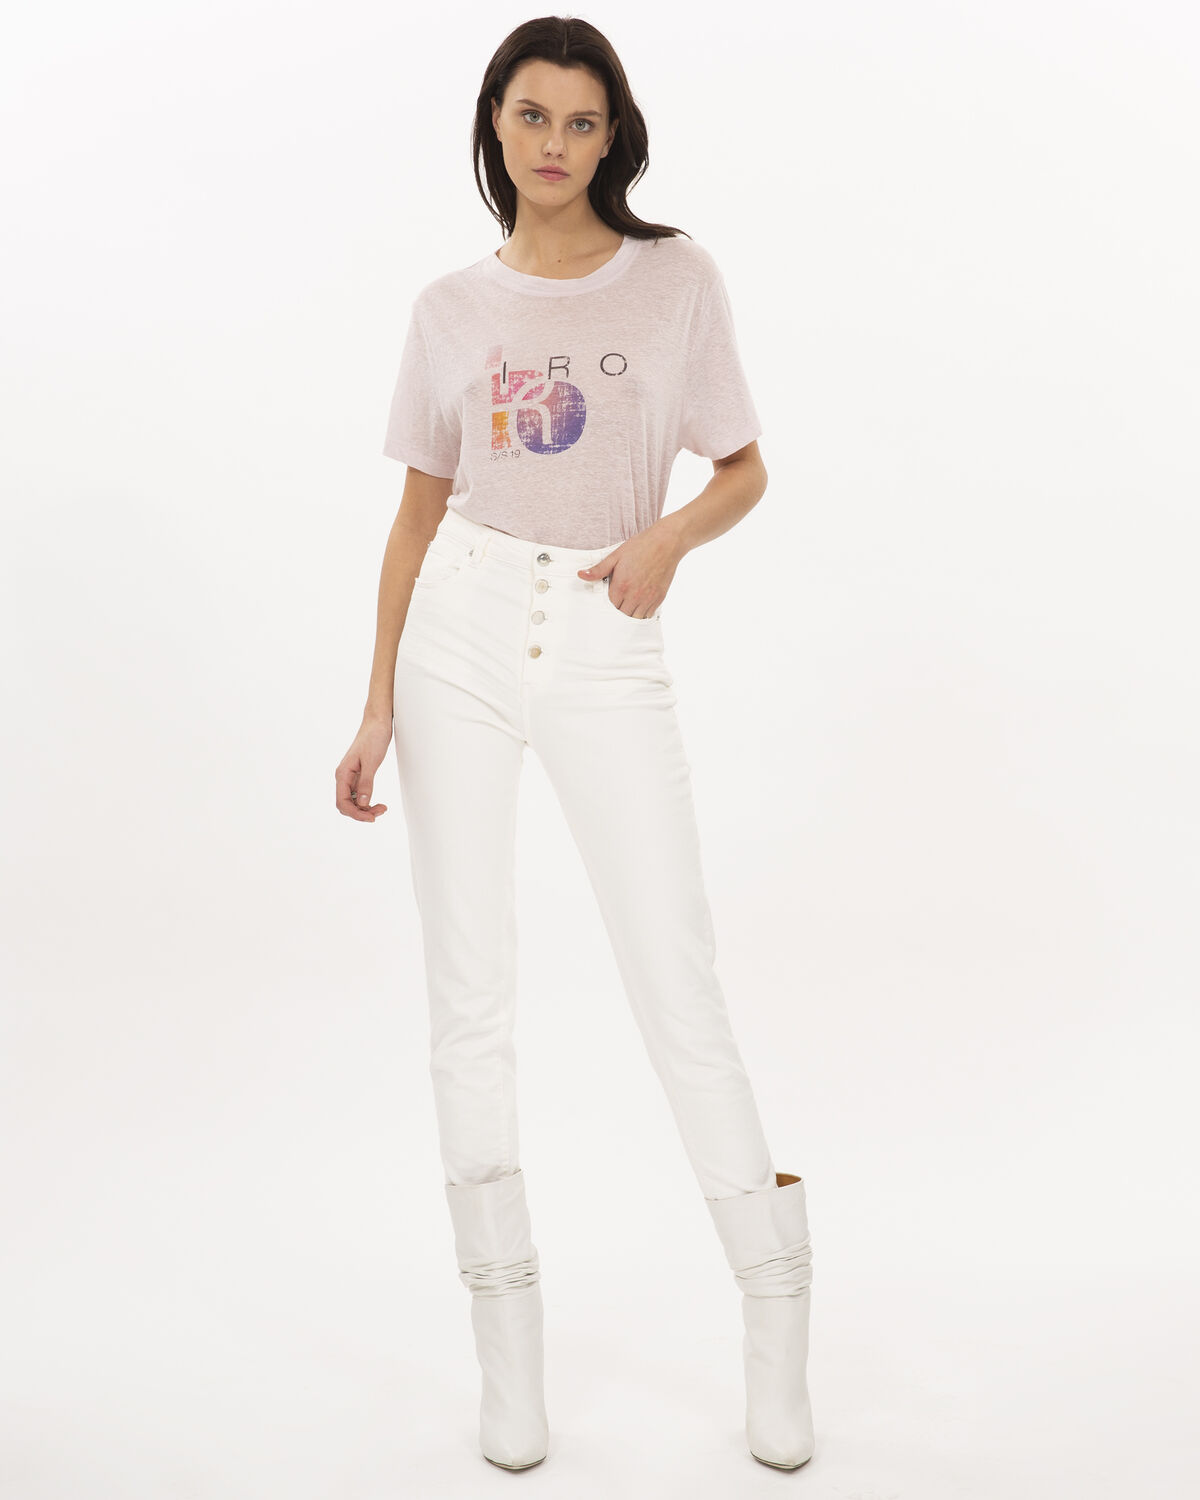 Inspiring T-Shirt Light Lavender by IRO Paris